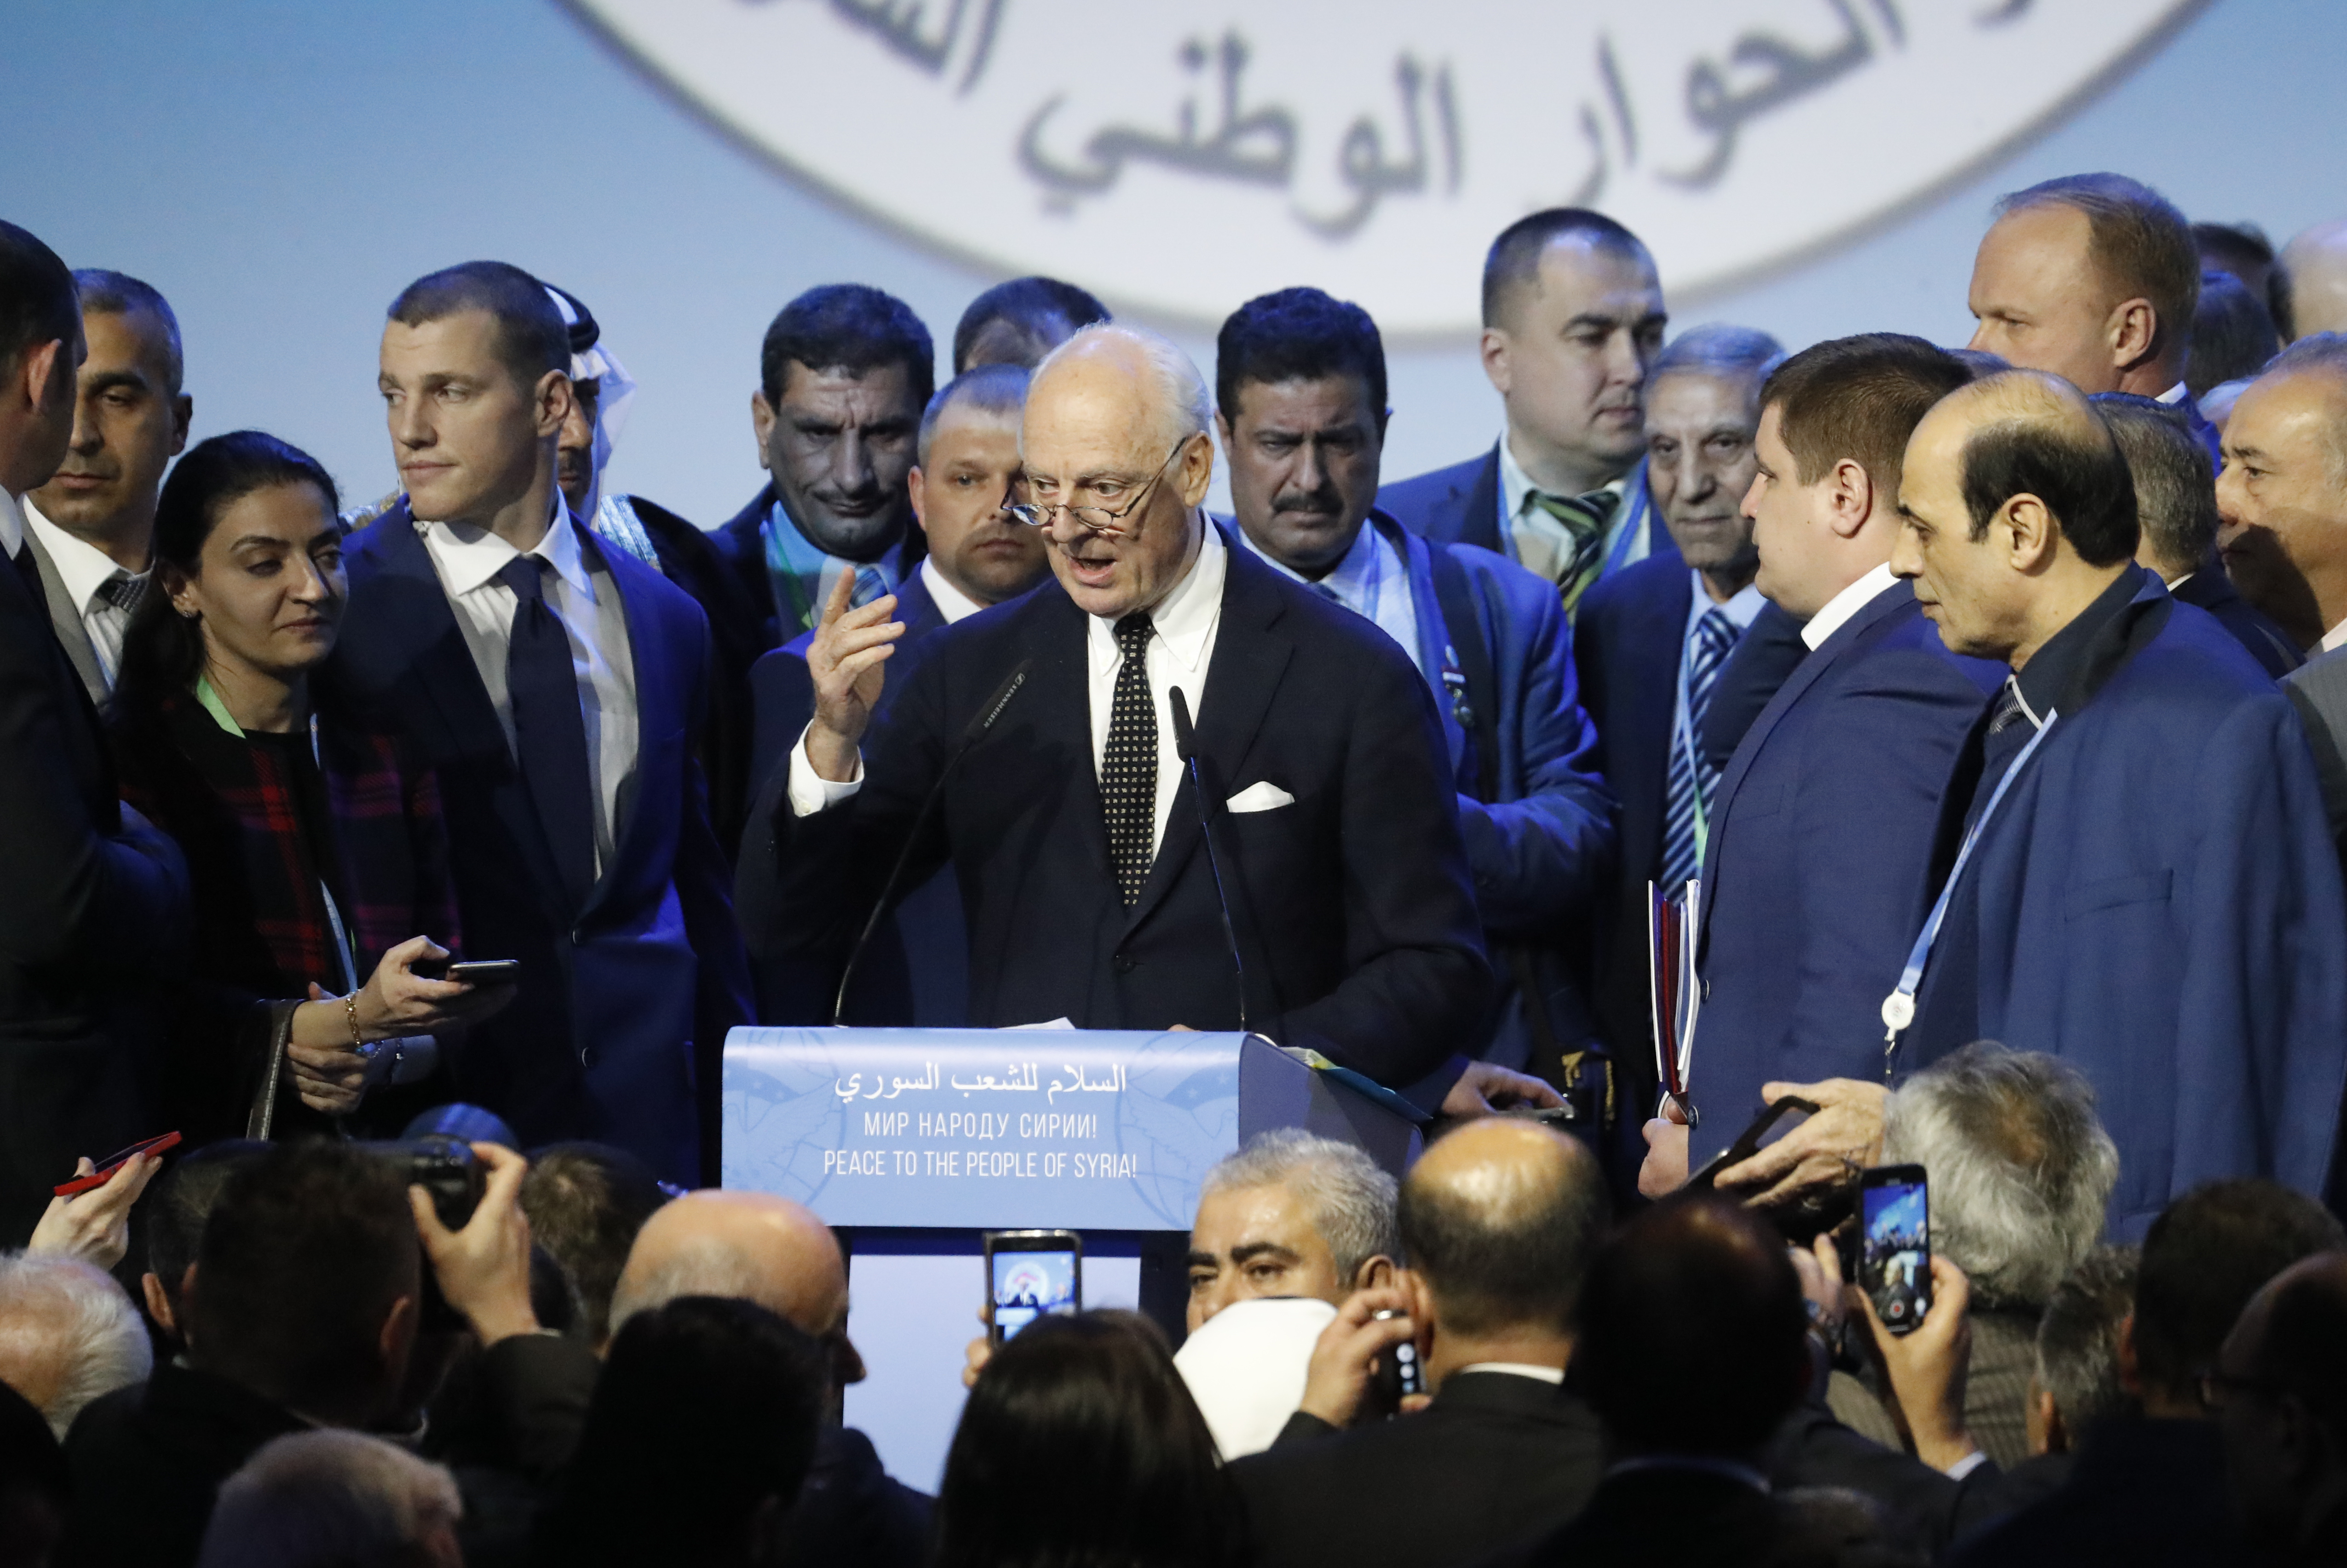 United Nations Special Envoy for Syria Staffan de Mistura speaks to attendees after a session of the Syrian Congress of National Dialogue in the Black Sea resort of Sochi, Russia, Jan. 30, 2018.